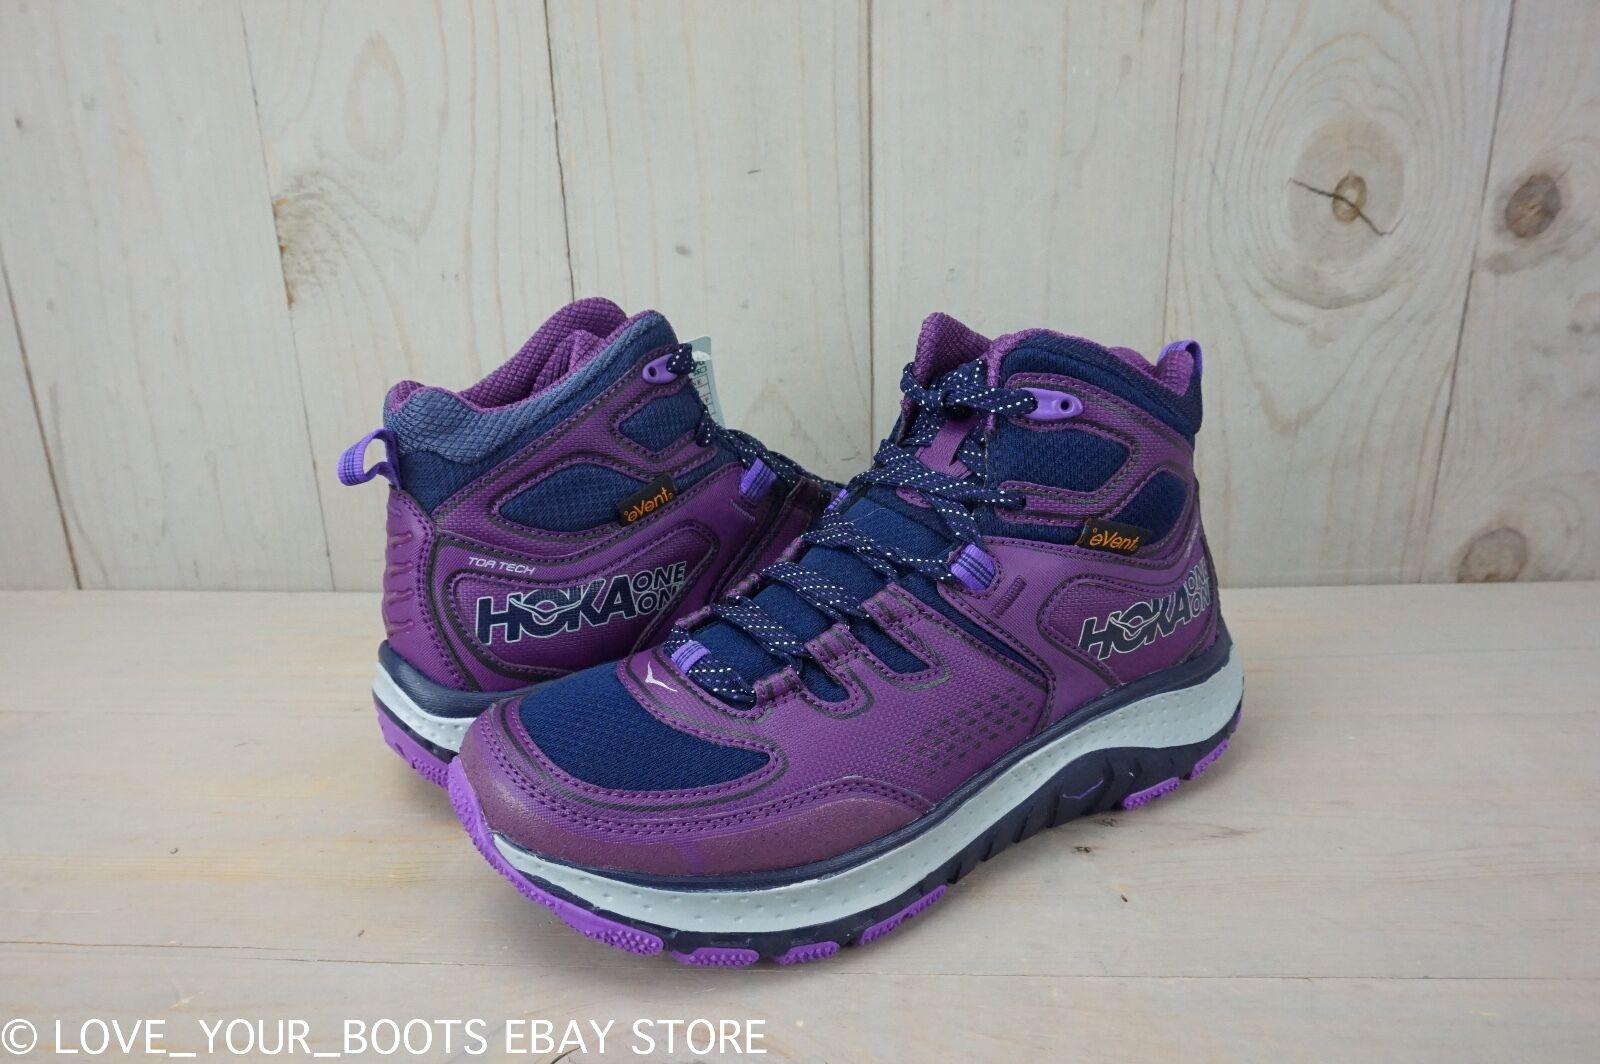 HOKA ONE ONE TOR TECH MID WP PEACOAT PLUM  HIKING  SHOES WOMENS  US 7 NEW